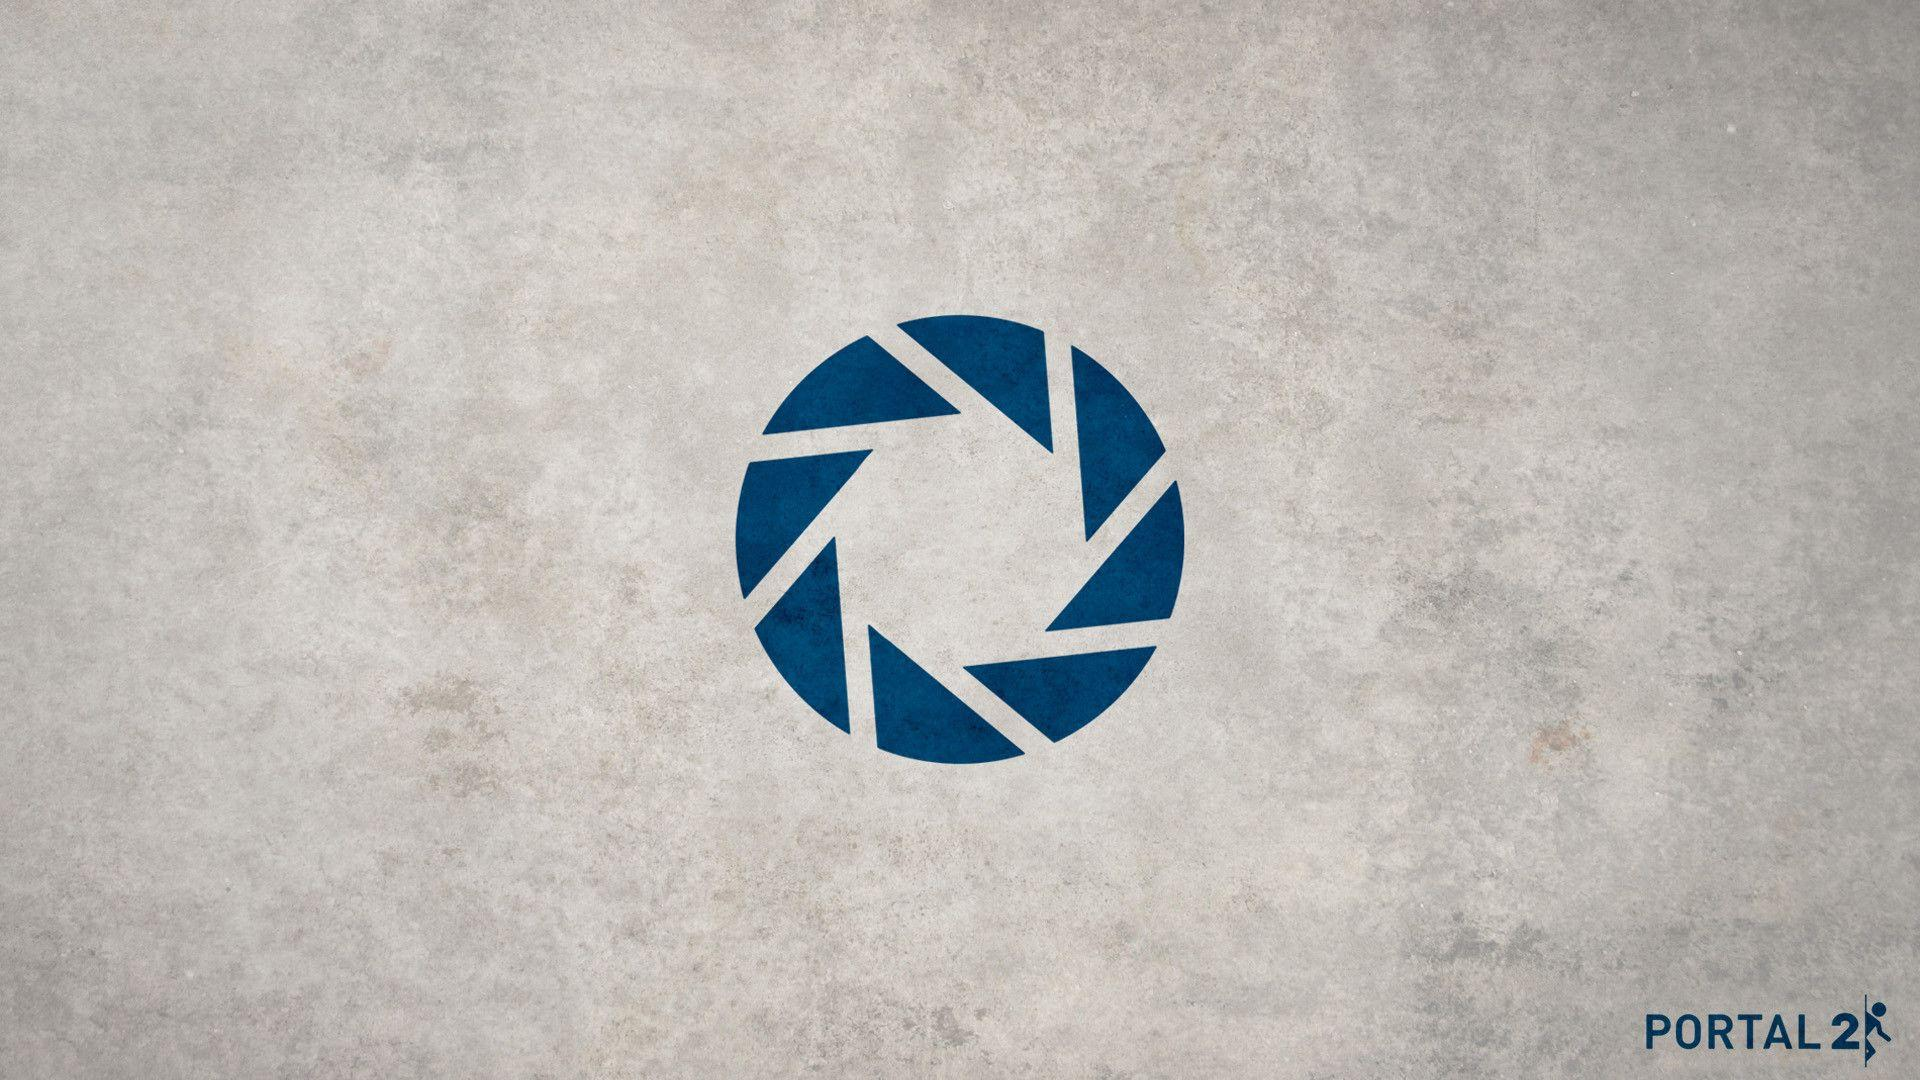 Portal 2 Sign wallpapers